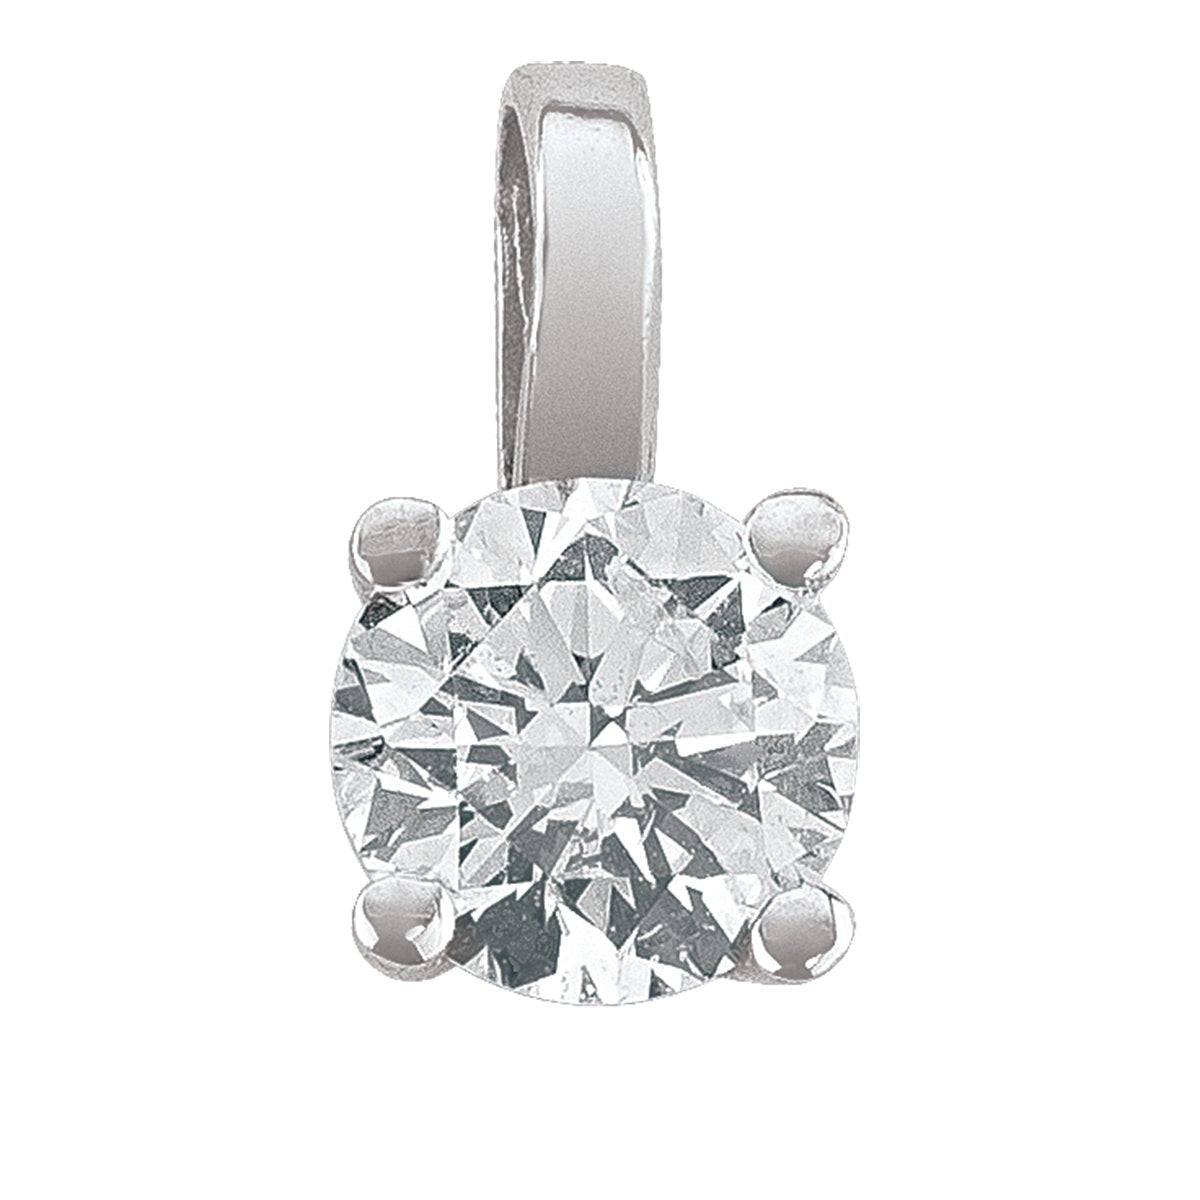 DIAMOND 4-CLAW SOLITAIRE PENDANTS (AVAILABLE IN VARIOUS STONE SIZE).